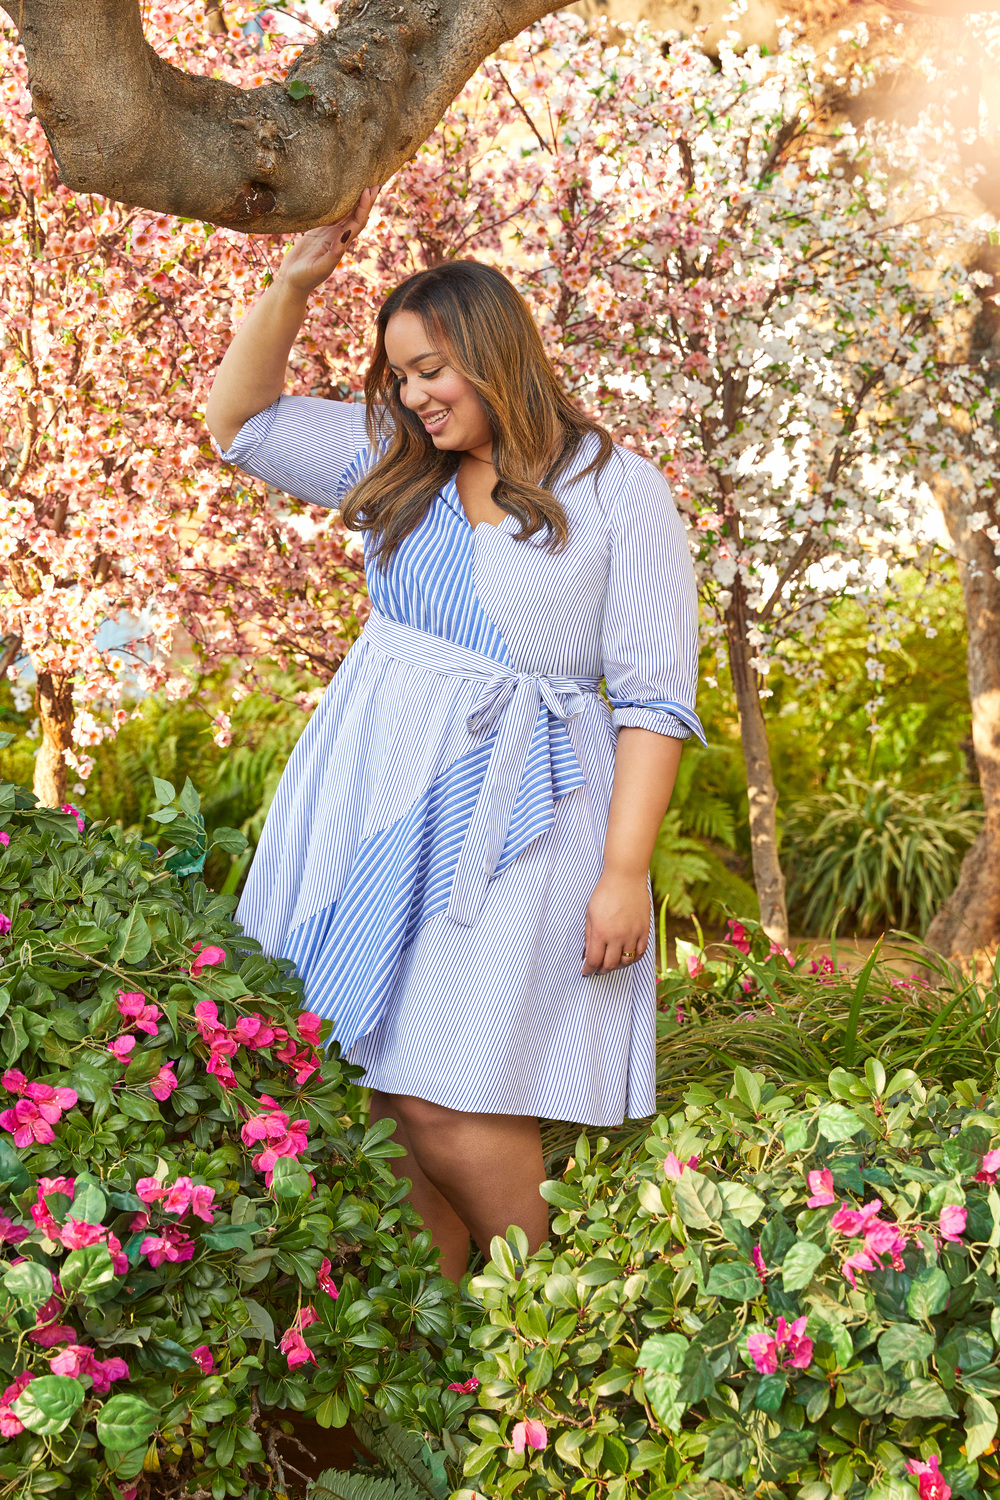 Beauticurve X Lane Bryant collection